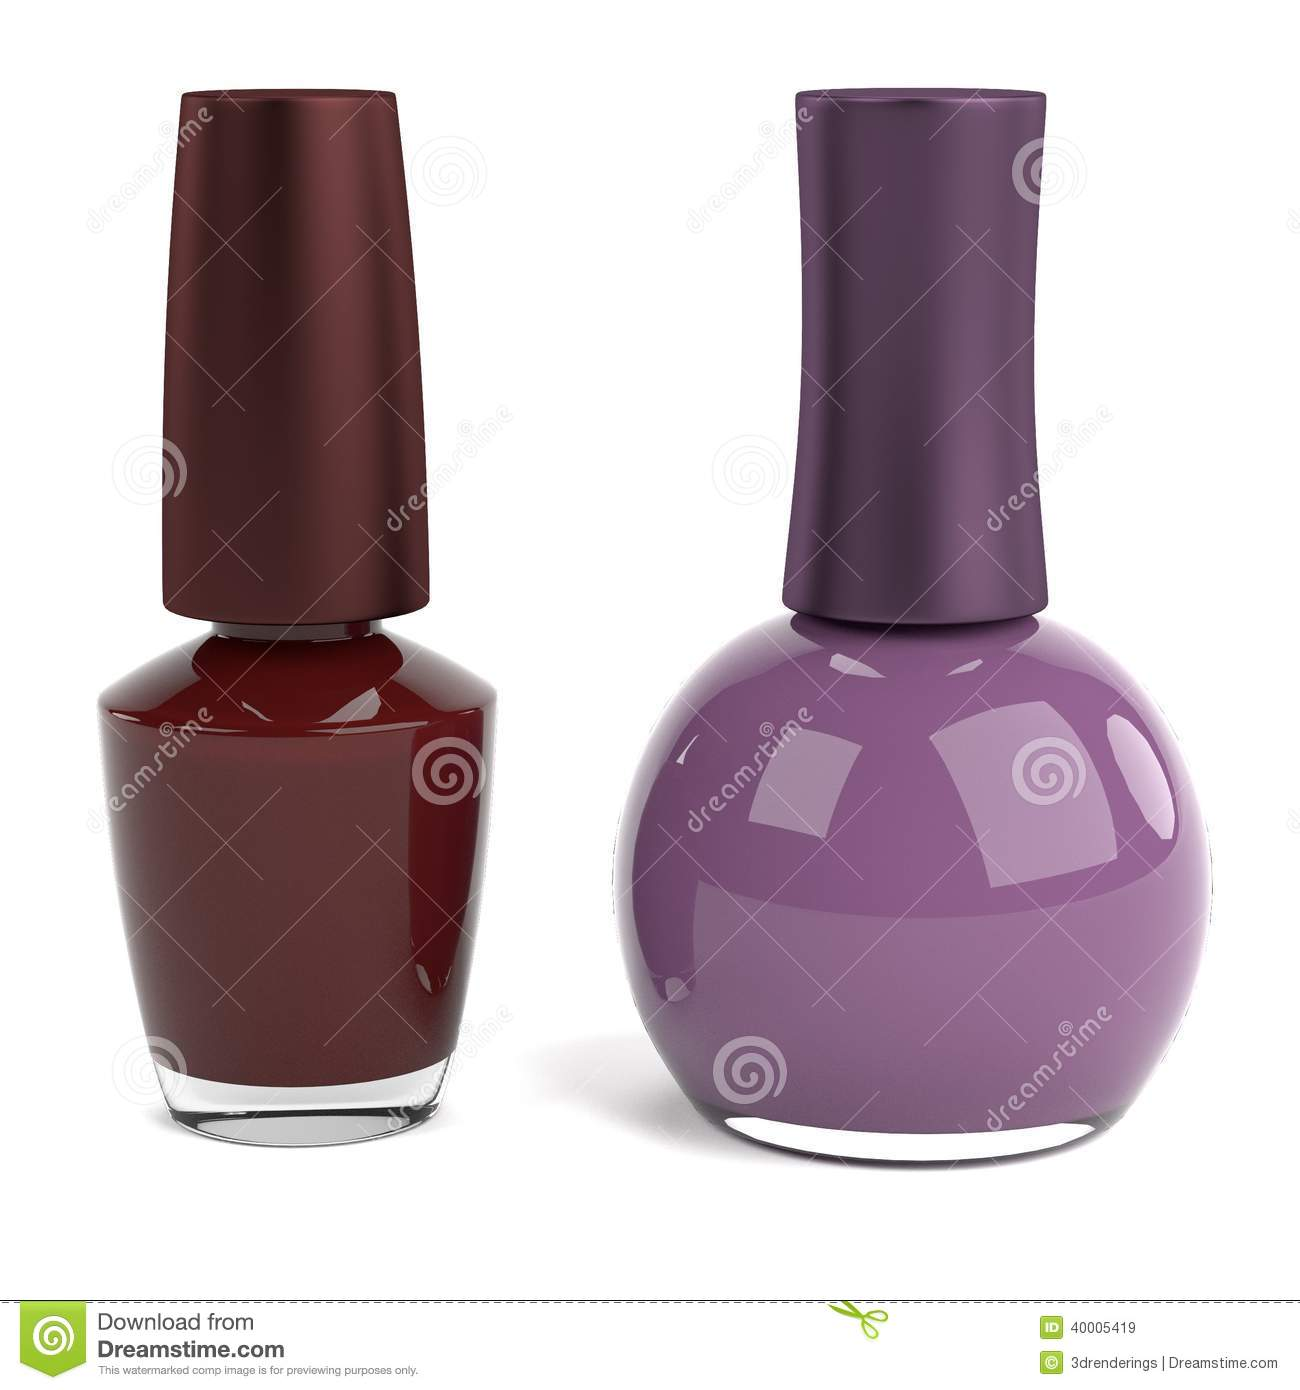 3d render of nailpolish stock illustration image 40005419 for How to renew old nail polish